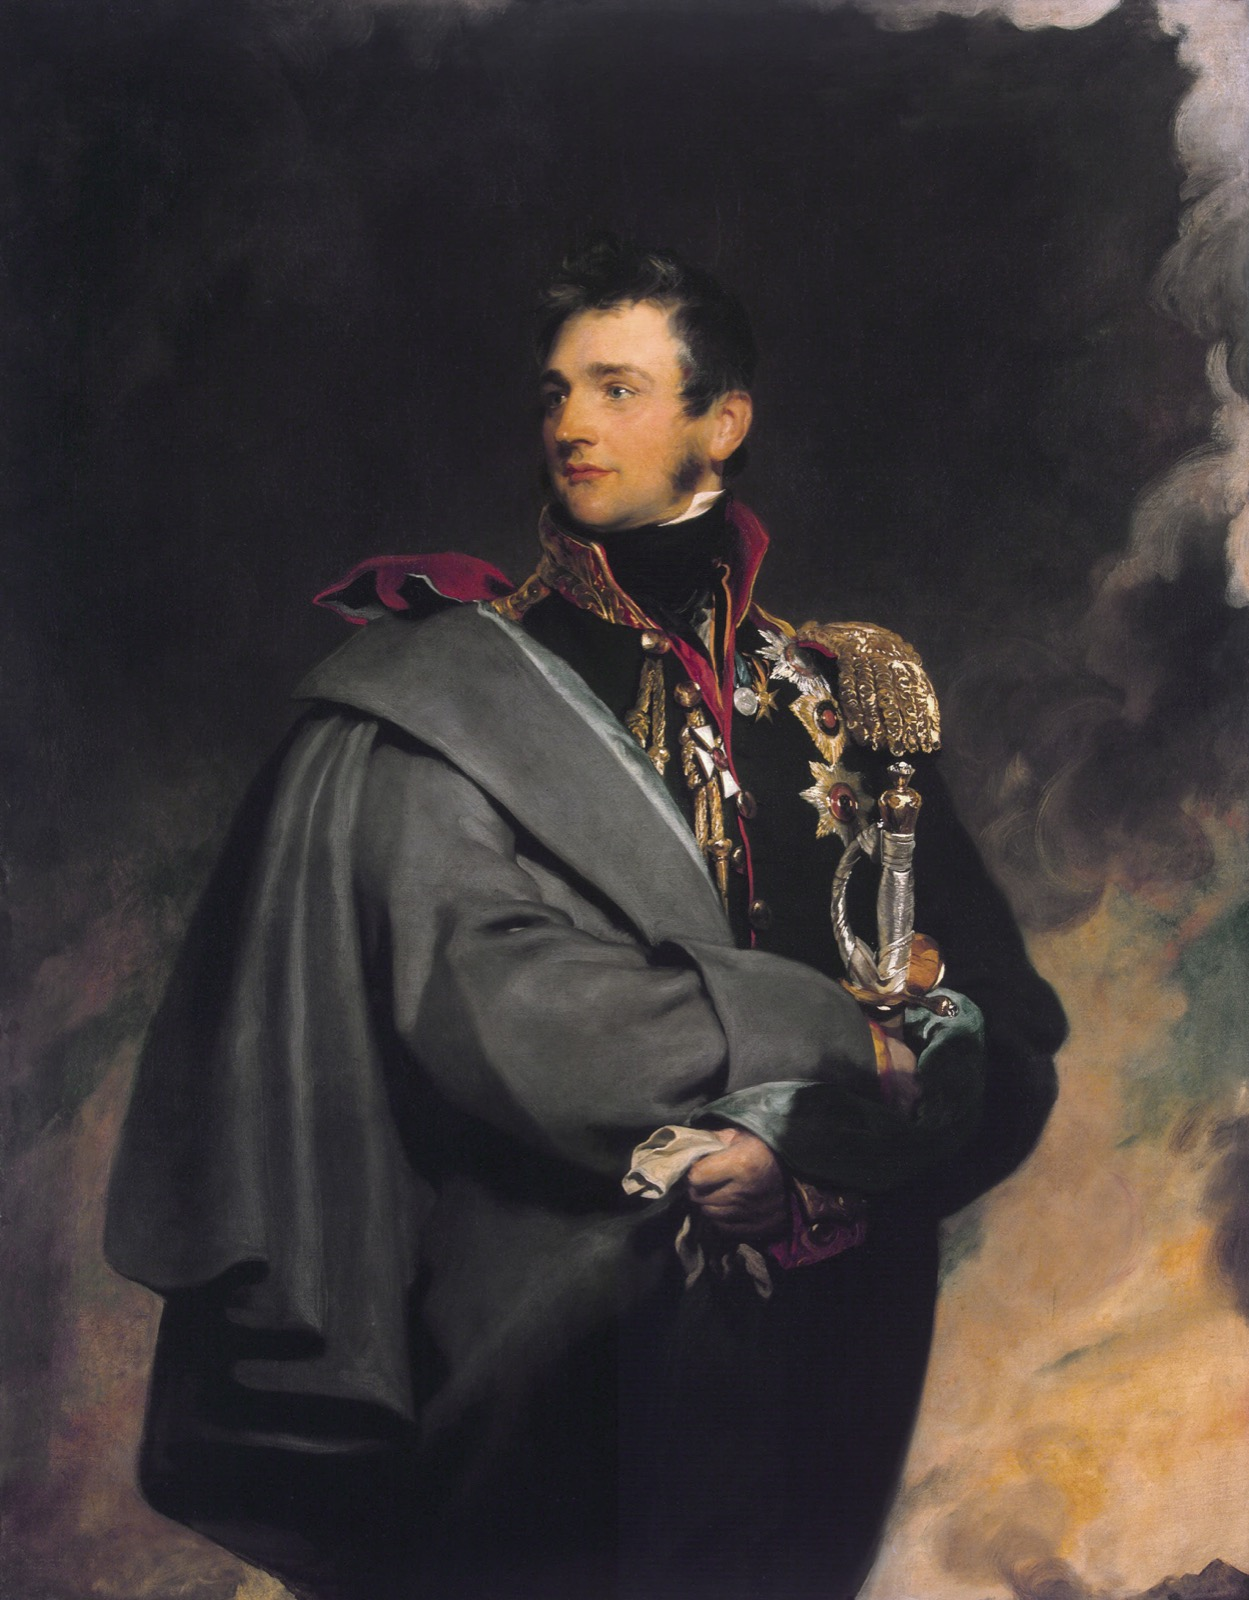 Count Mikhail S. Vorontsov, by Thomas Lawrence